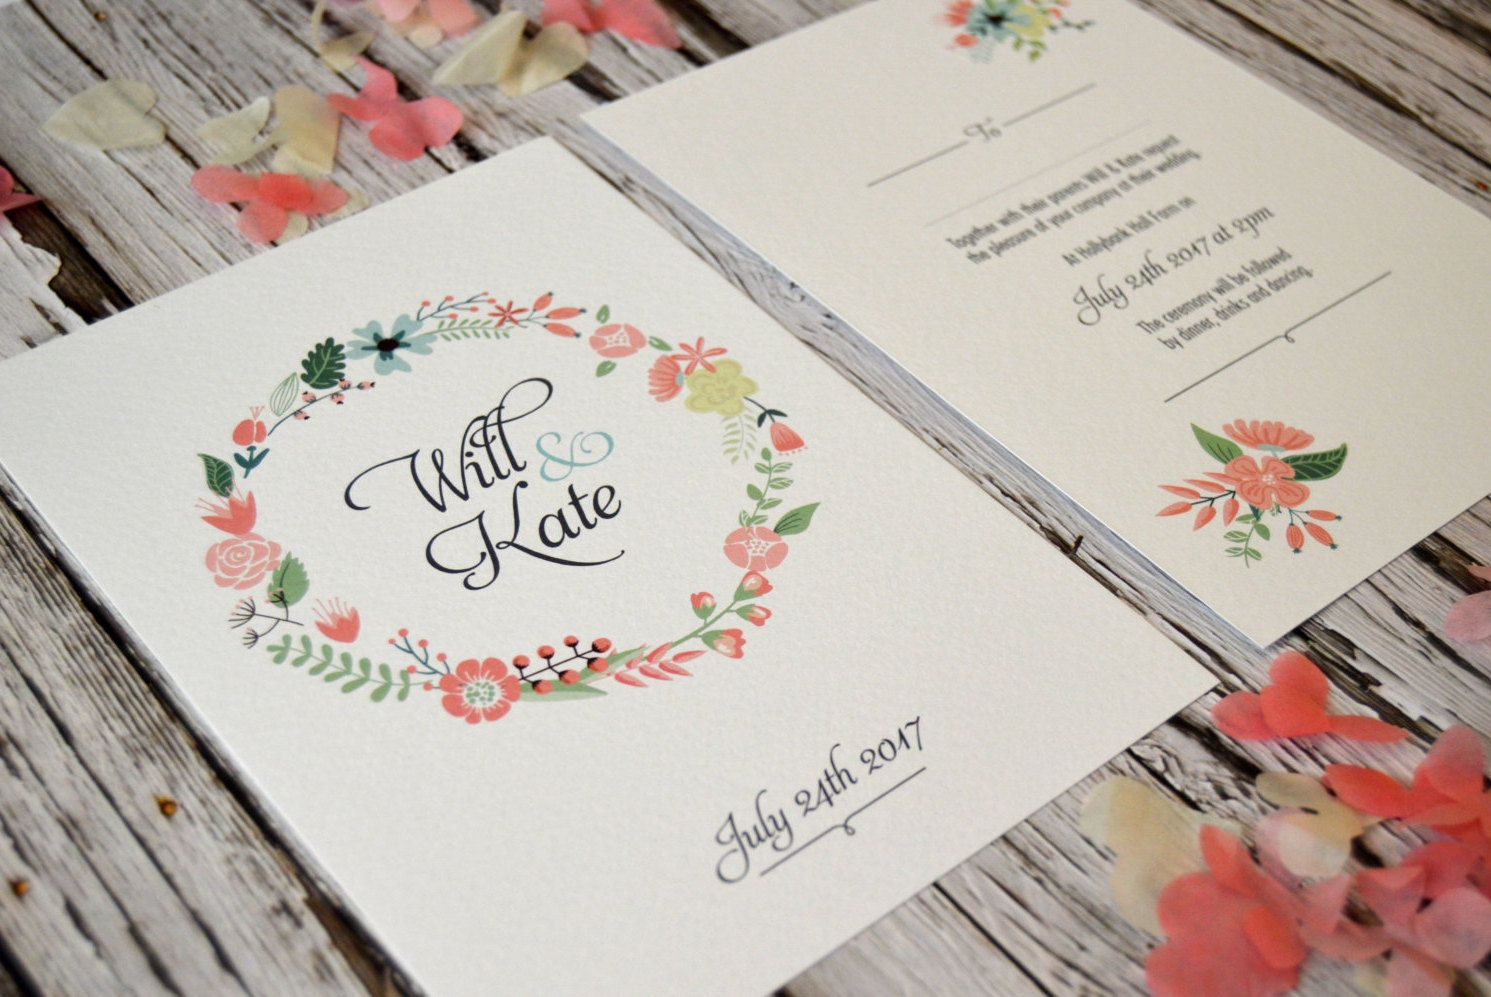 Pretty Floral Wedding Bundle Sample, Rustic Country Boho Stationery, RSVP, SAMPLE ONLY by CandyFaceCreative on Etsy